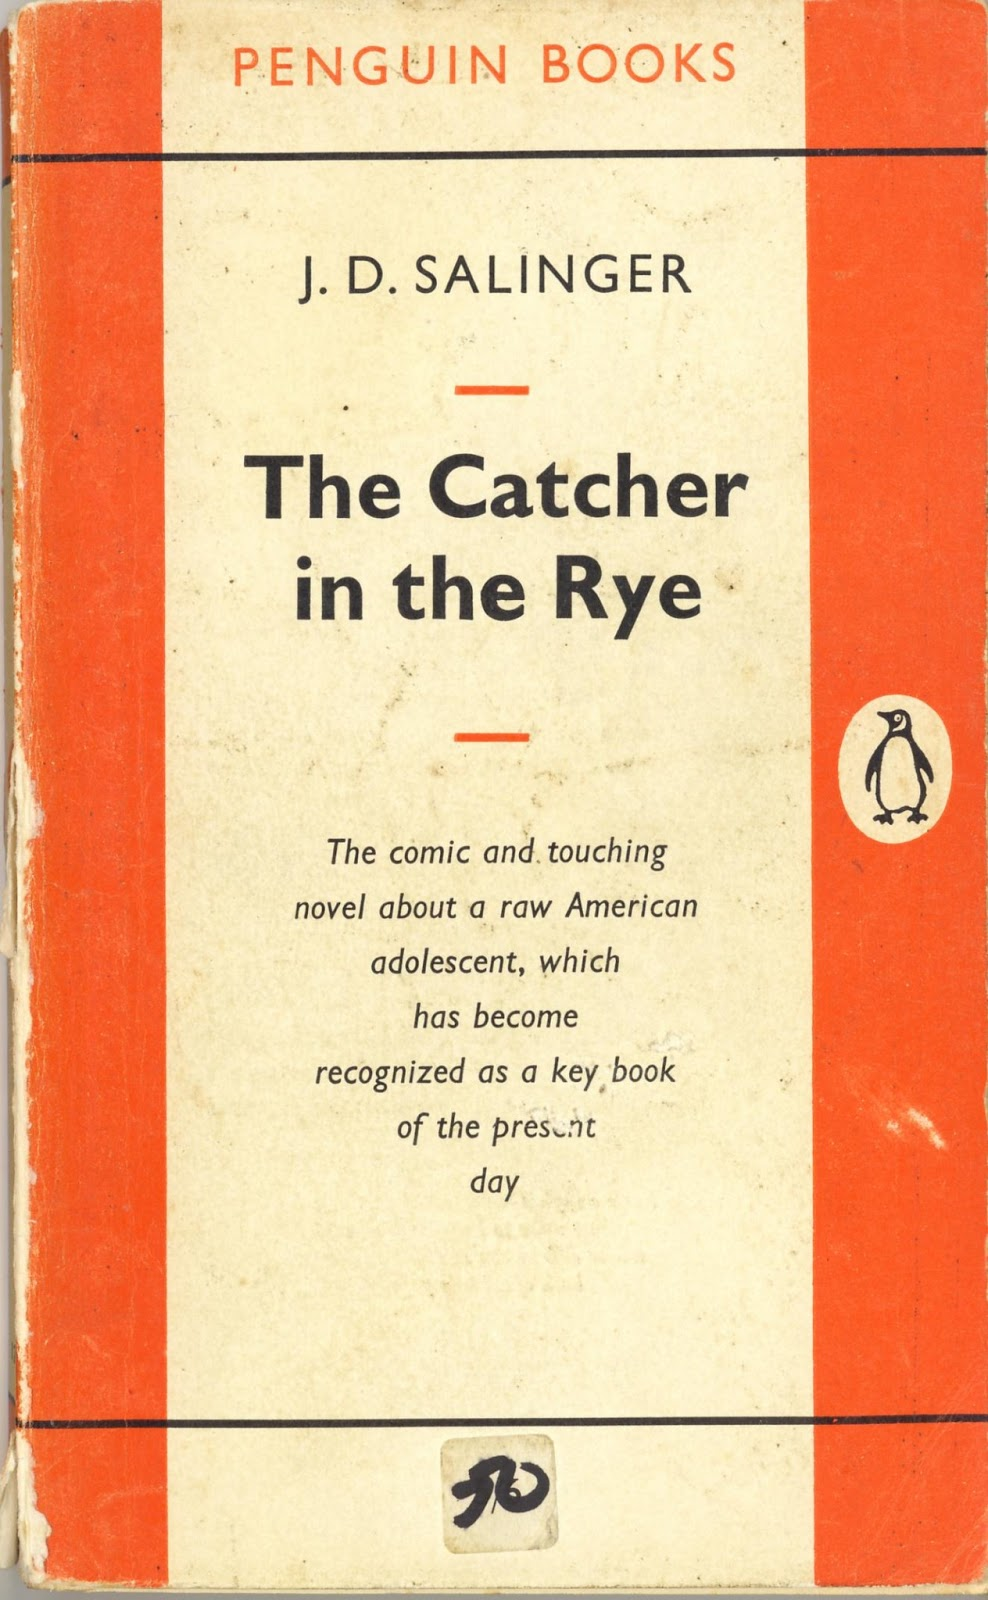 A journey to self knowledge in the catcher in the rye by j d salinger